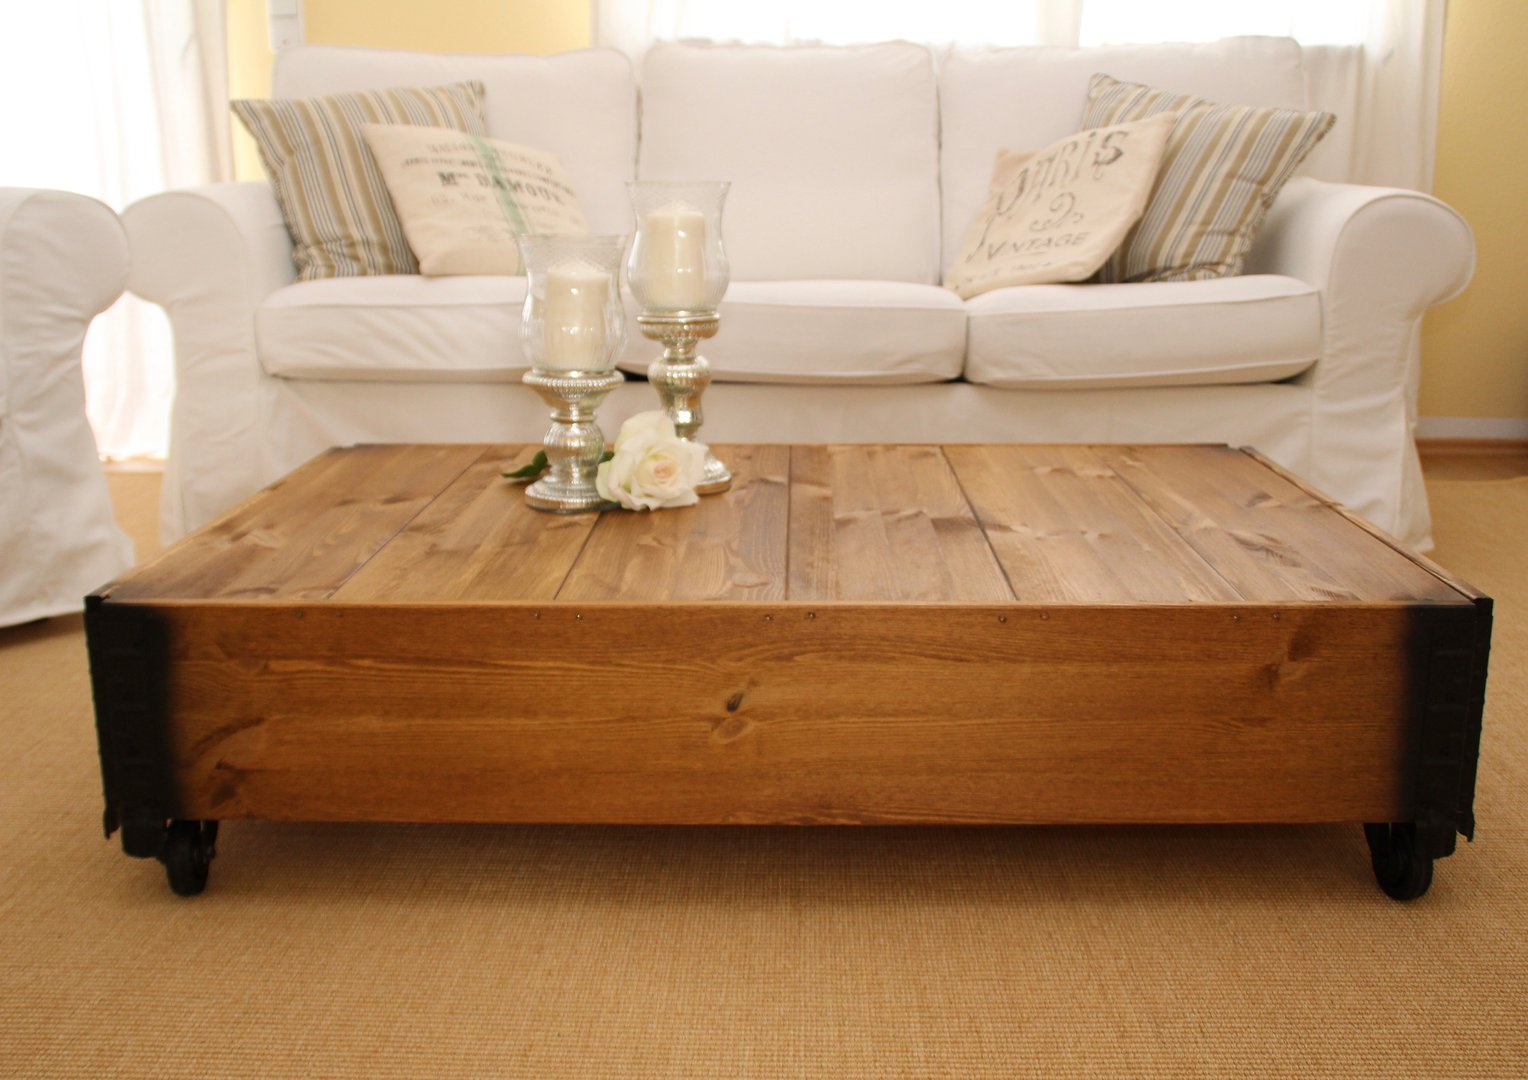 Couchtisch Holz Mit Schublade Table Basse Table De Salon Table Basse Bois Massif Vintage